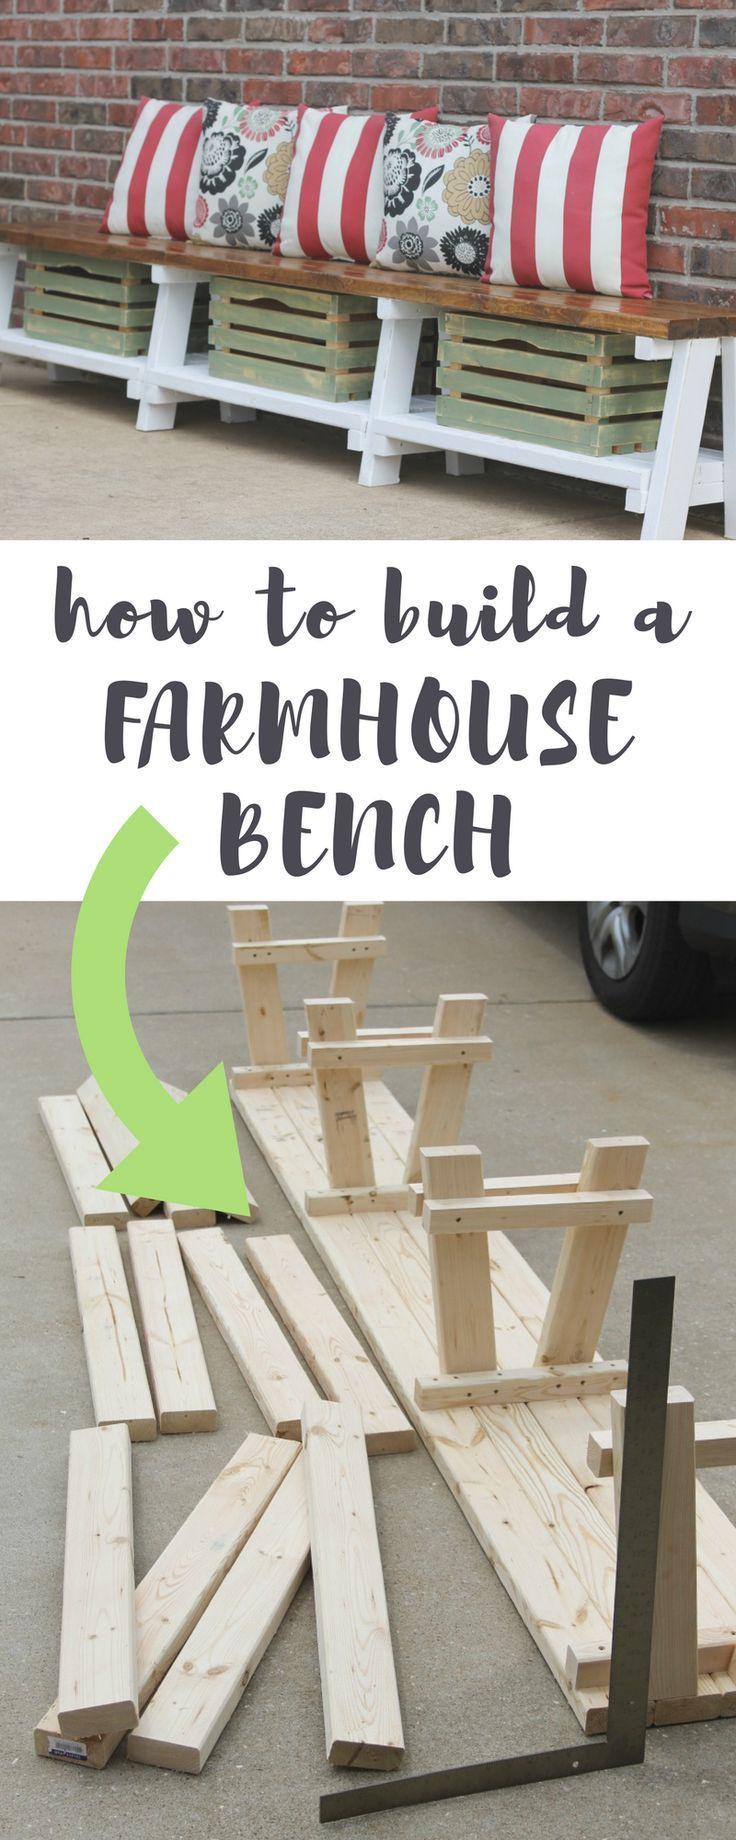 DIY farmhouse bench  http://centophobe.com/build-this-farmhouse-bench-with-storage-in-10-simple-steps/